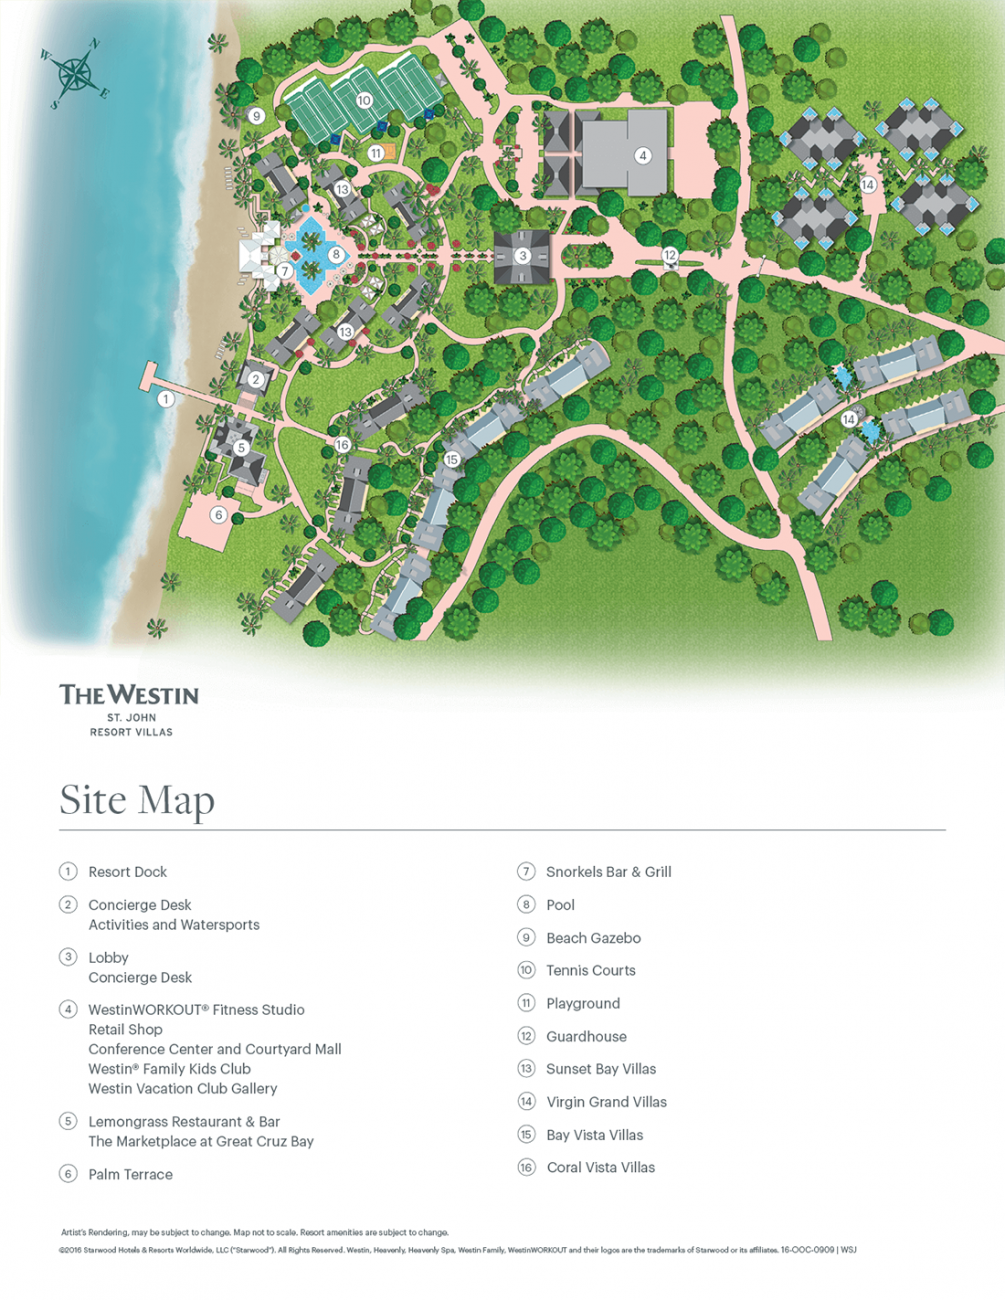 16 ooc 0909 wsj resort site map 12 16 1005x1300